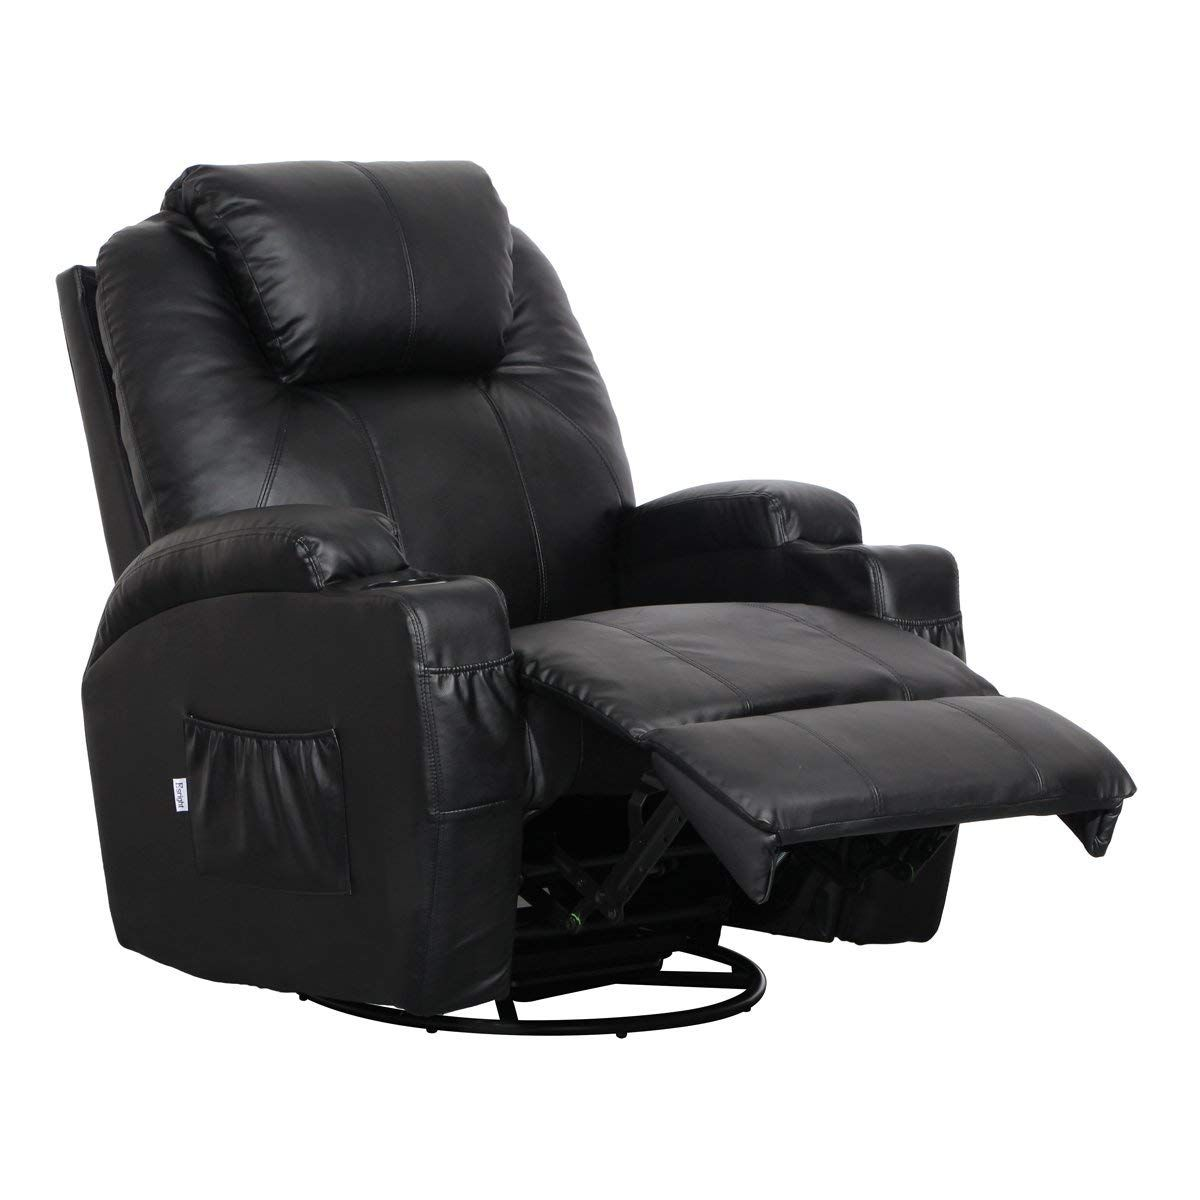 Pin On Amazon #swivel #reclining #chairs #for #living #room